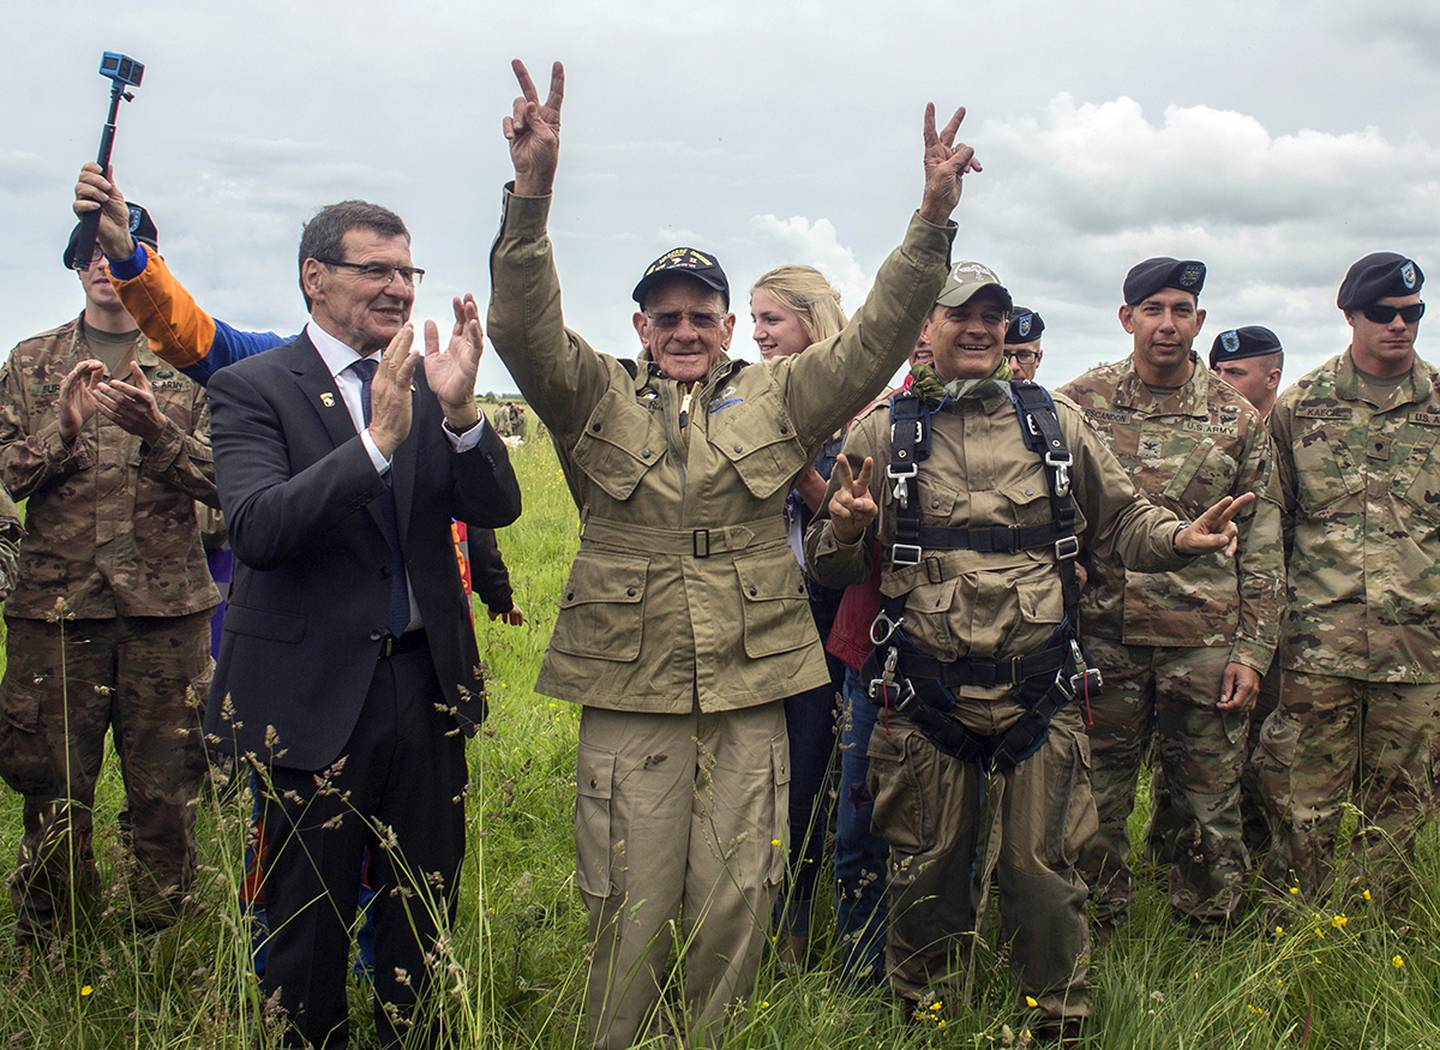 World War II D-Day veteran Tom Rice, from Coronado, Calif., after parachuting in a tandem jump into a field in Carentan, Normandy, France.